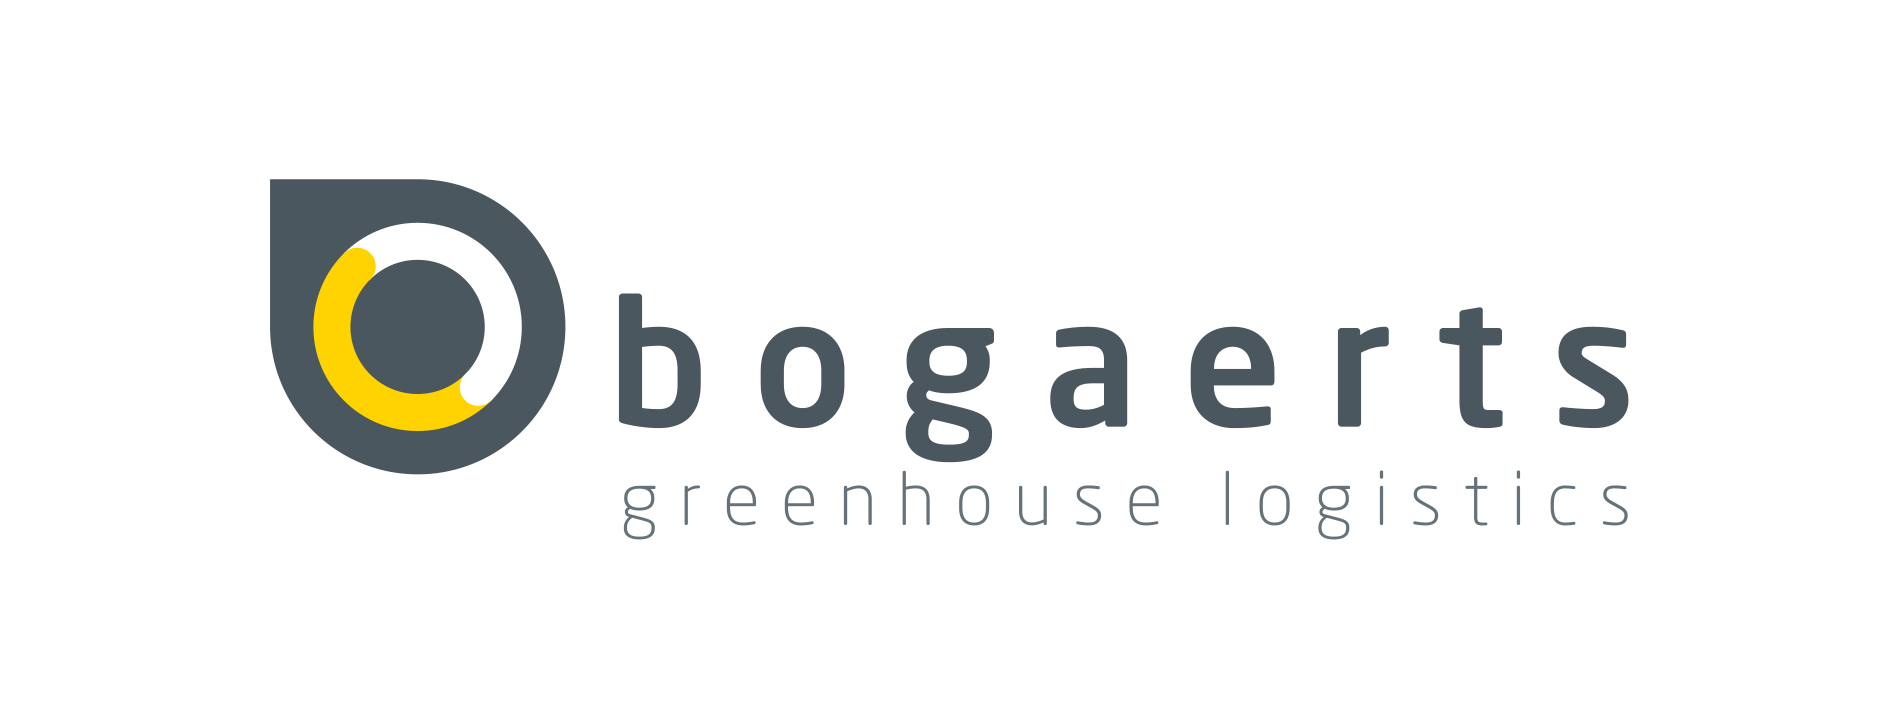 Bogaerts Greenhouse Logistics - quality growers use quality tools